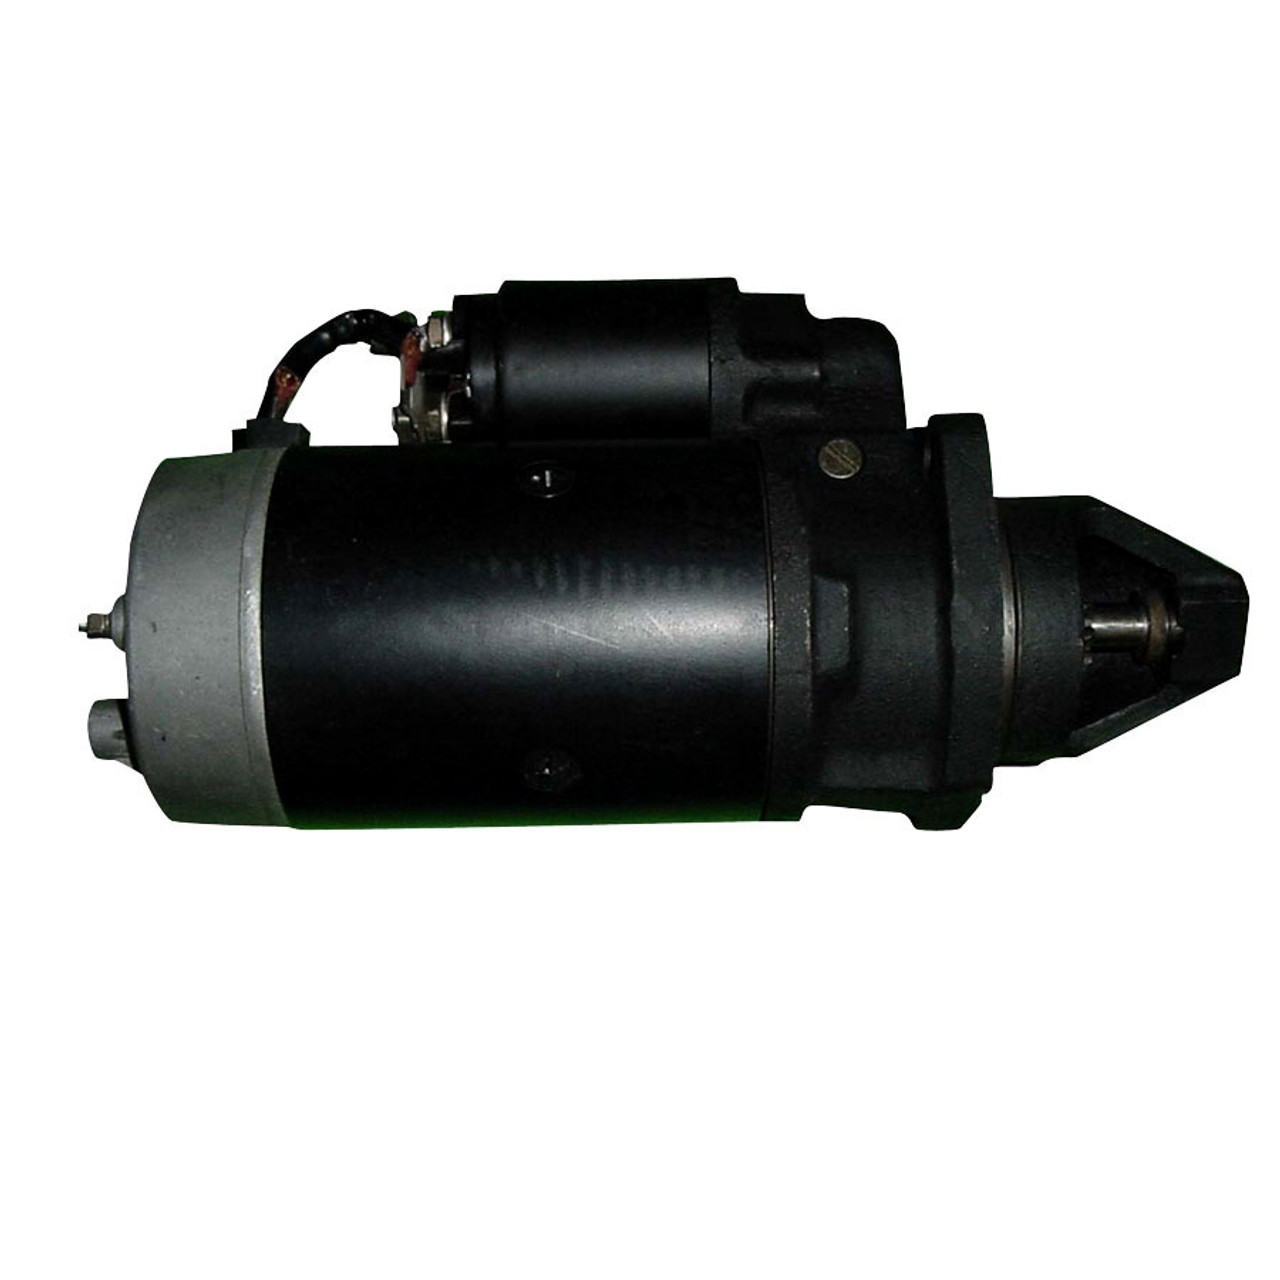 New Starter for JD TY6720 1 Year Warranty